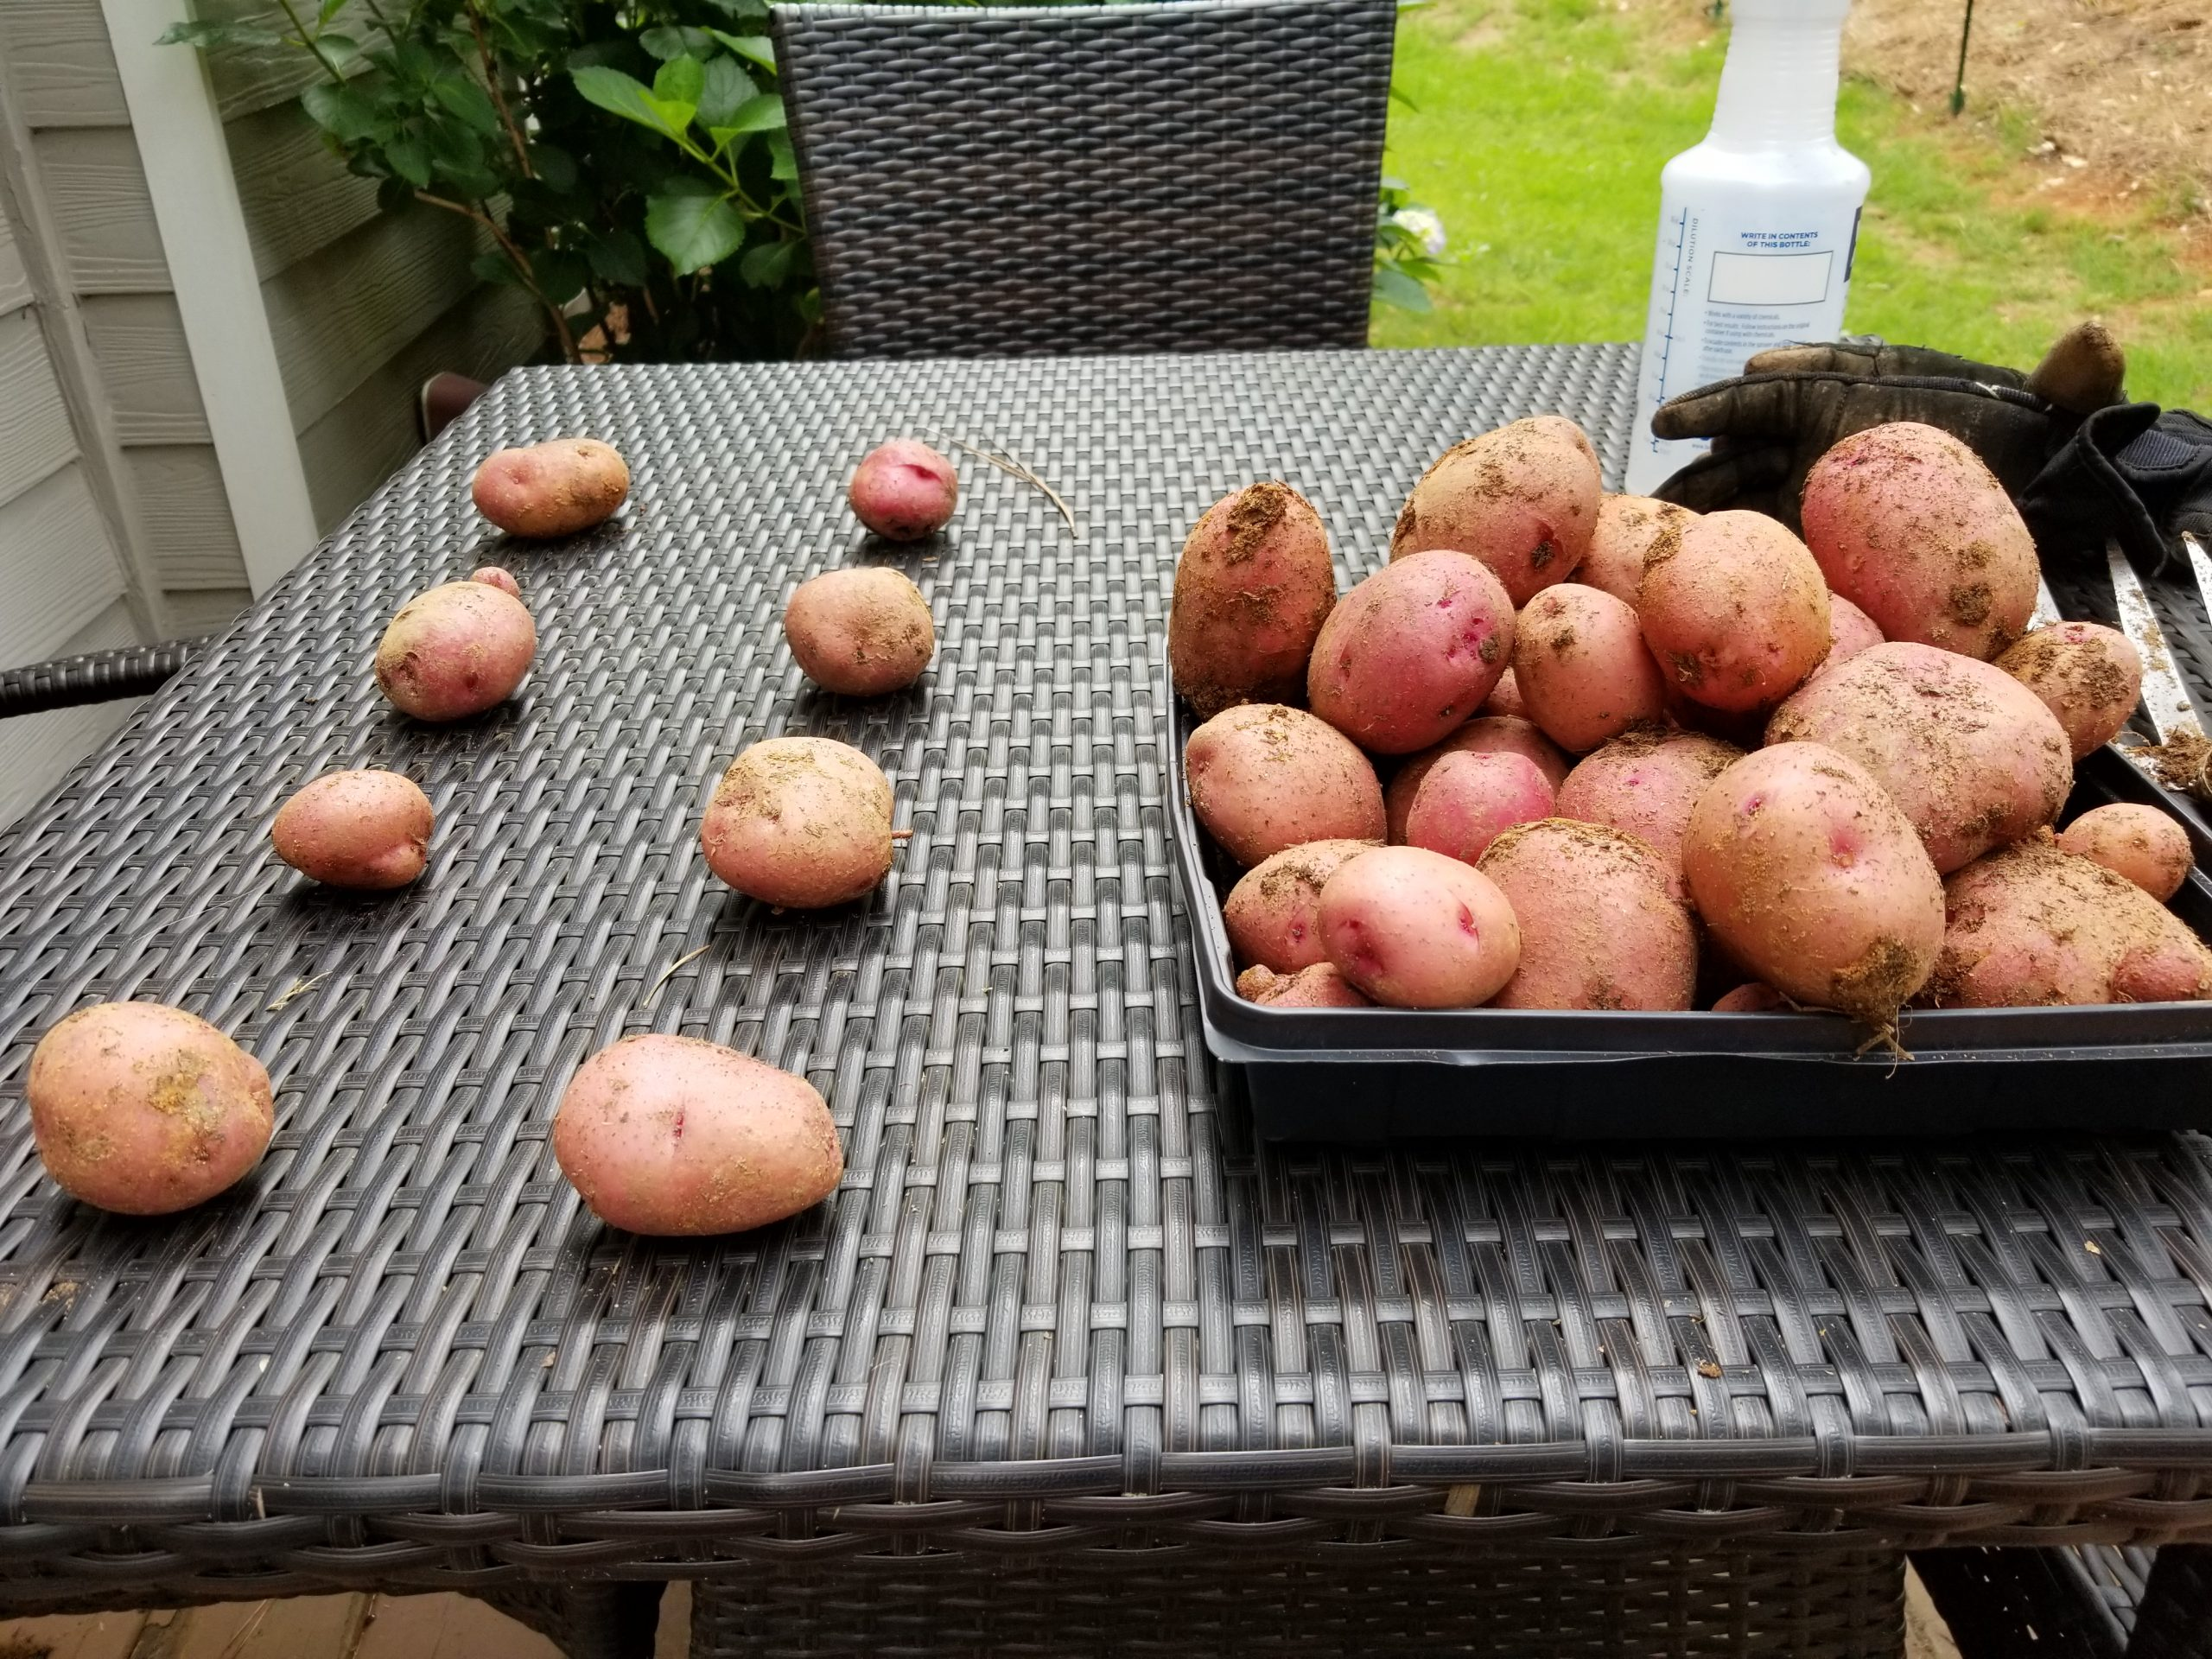 harvested-the-red-norland-potatoes-ste-do-cli